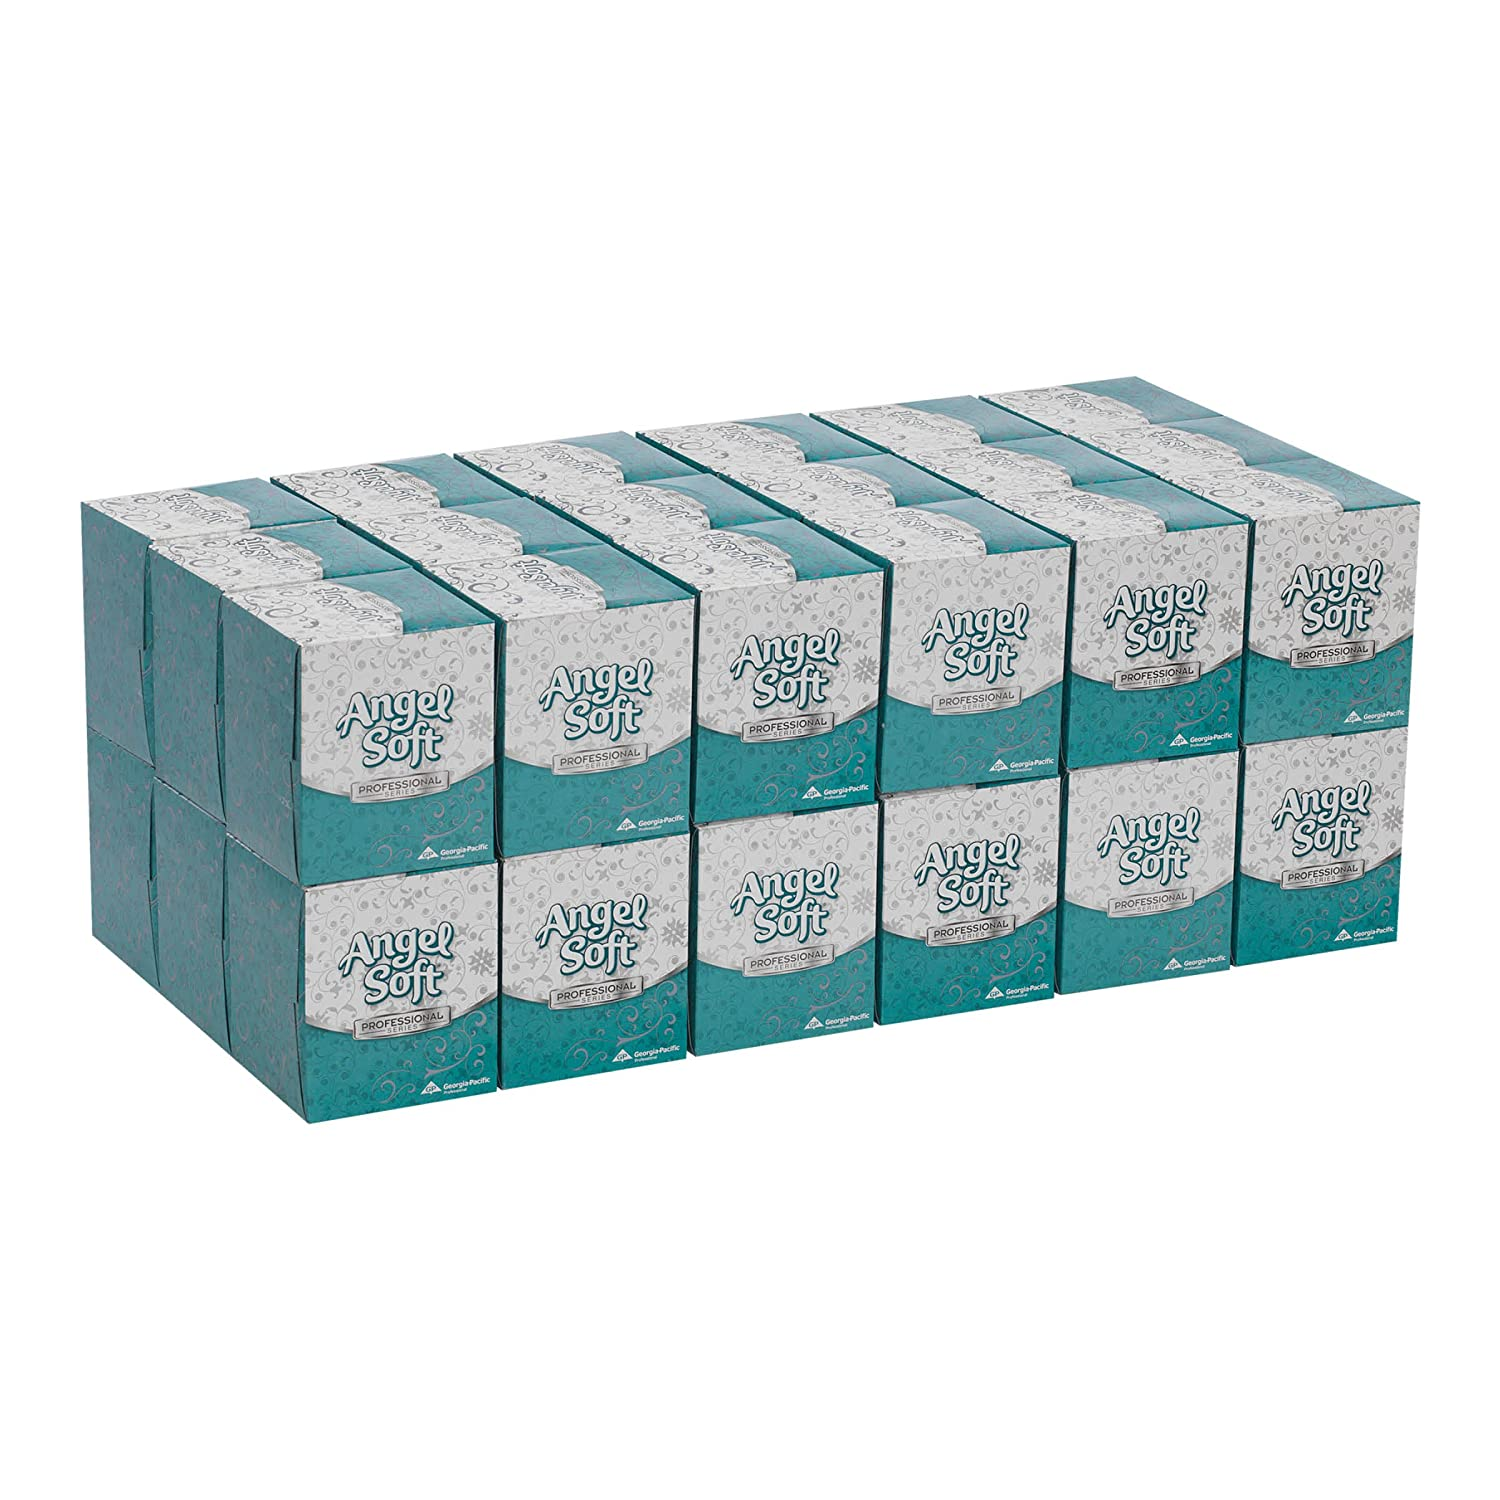 Georgia-Pacific Angel Soft Professional Series 2-Ply Facial Tissue by GP PRO